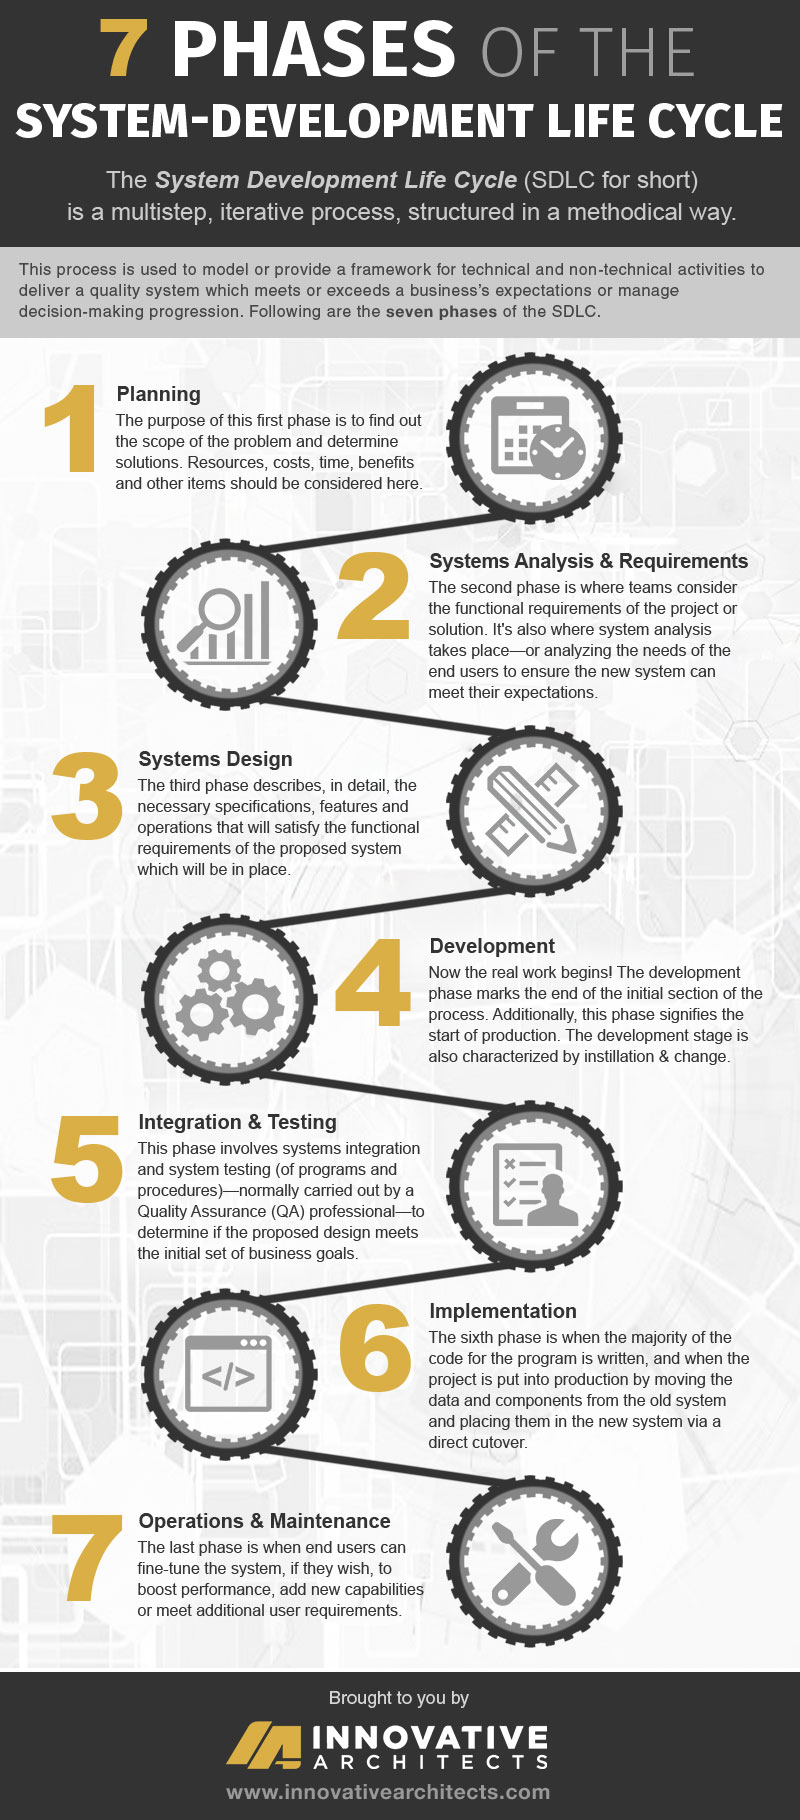 SDLC: Seven Phases of the System Development Life Cycle